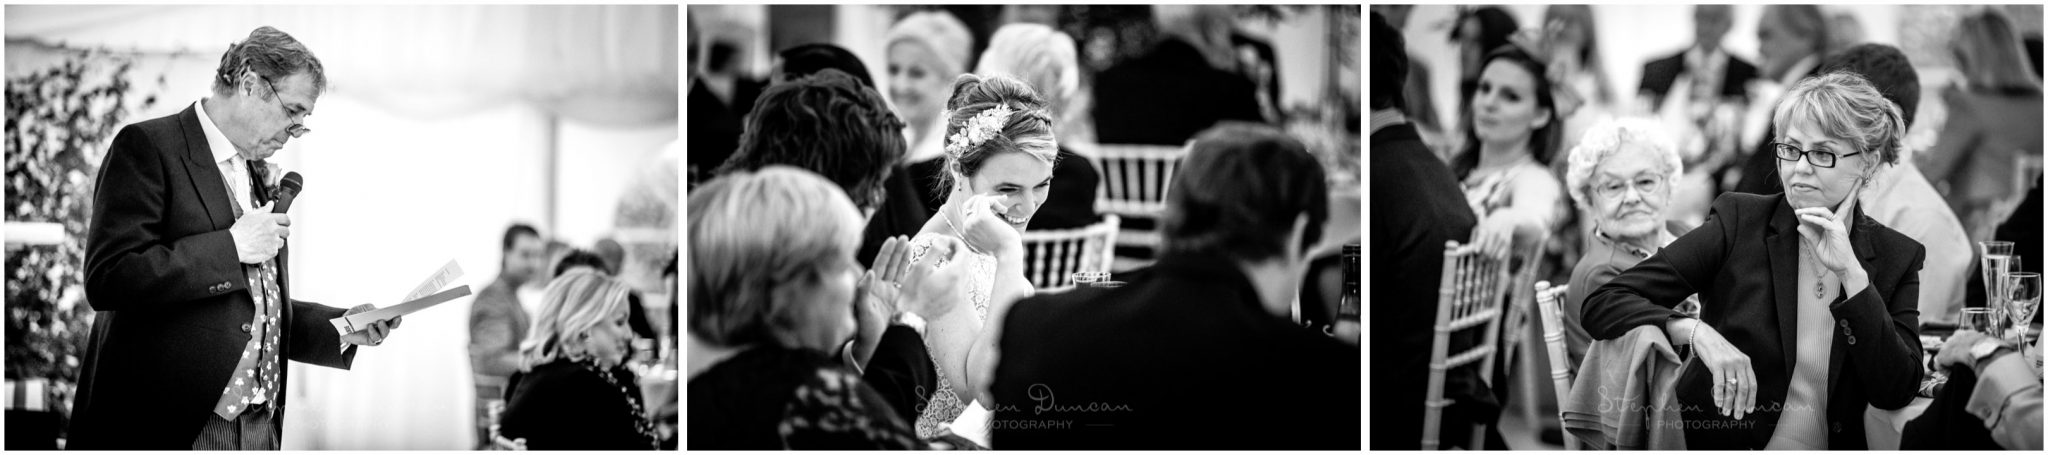 Lymington wedding photography father of the bride speech